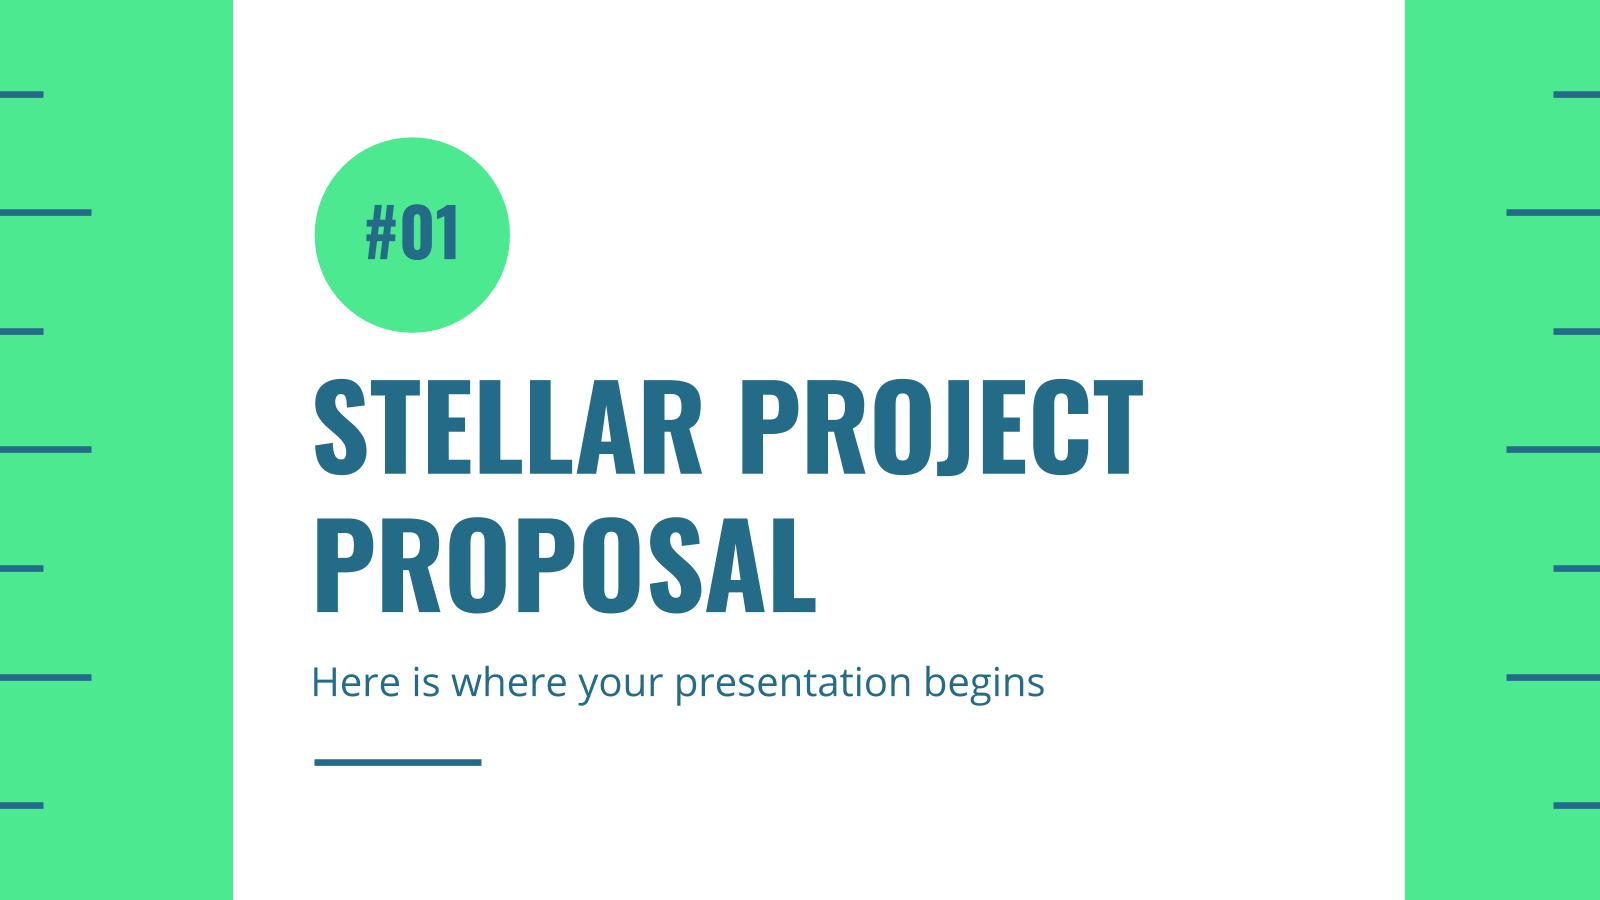 Stellar Project Proposal presentation template